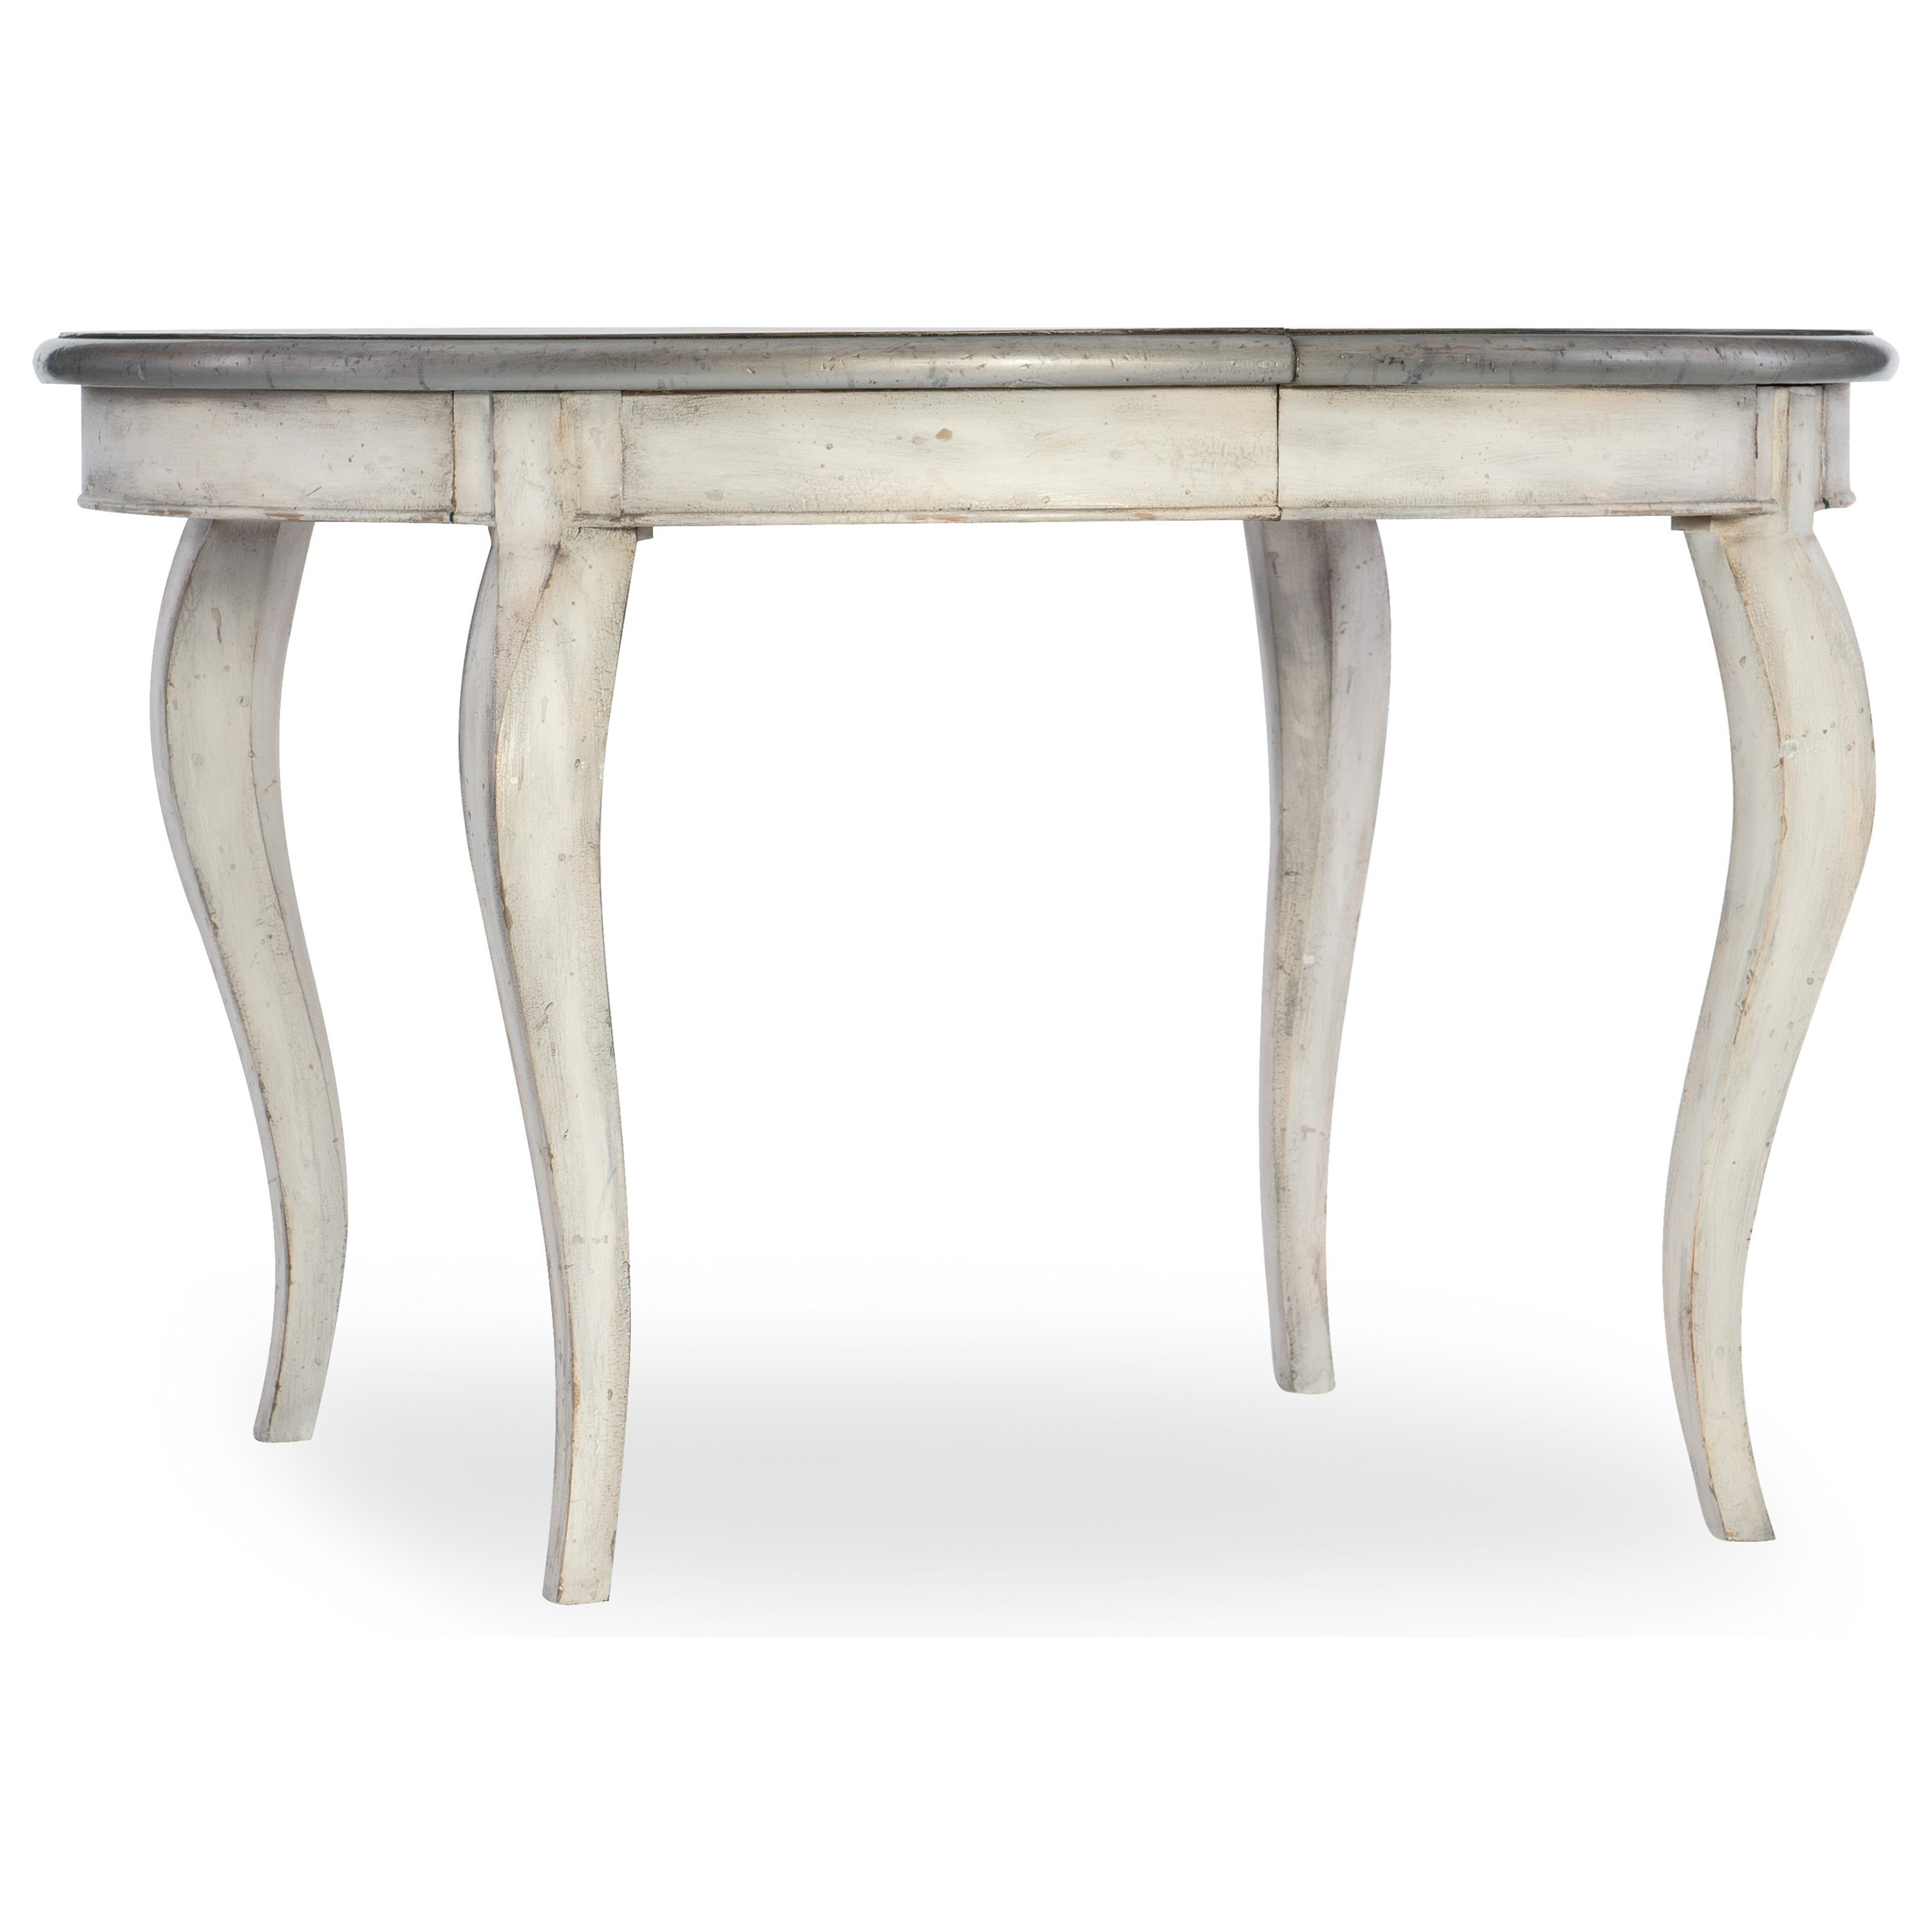 Arabella 48in Round Leg Table with 1-20in leaf by Hooker Furniture at Baer's Furniture